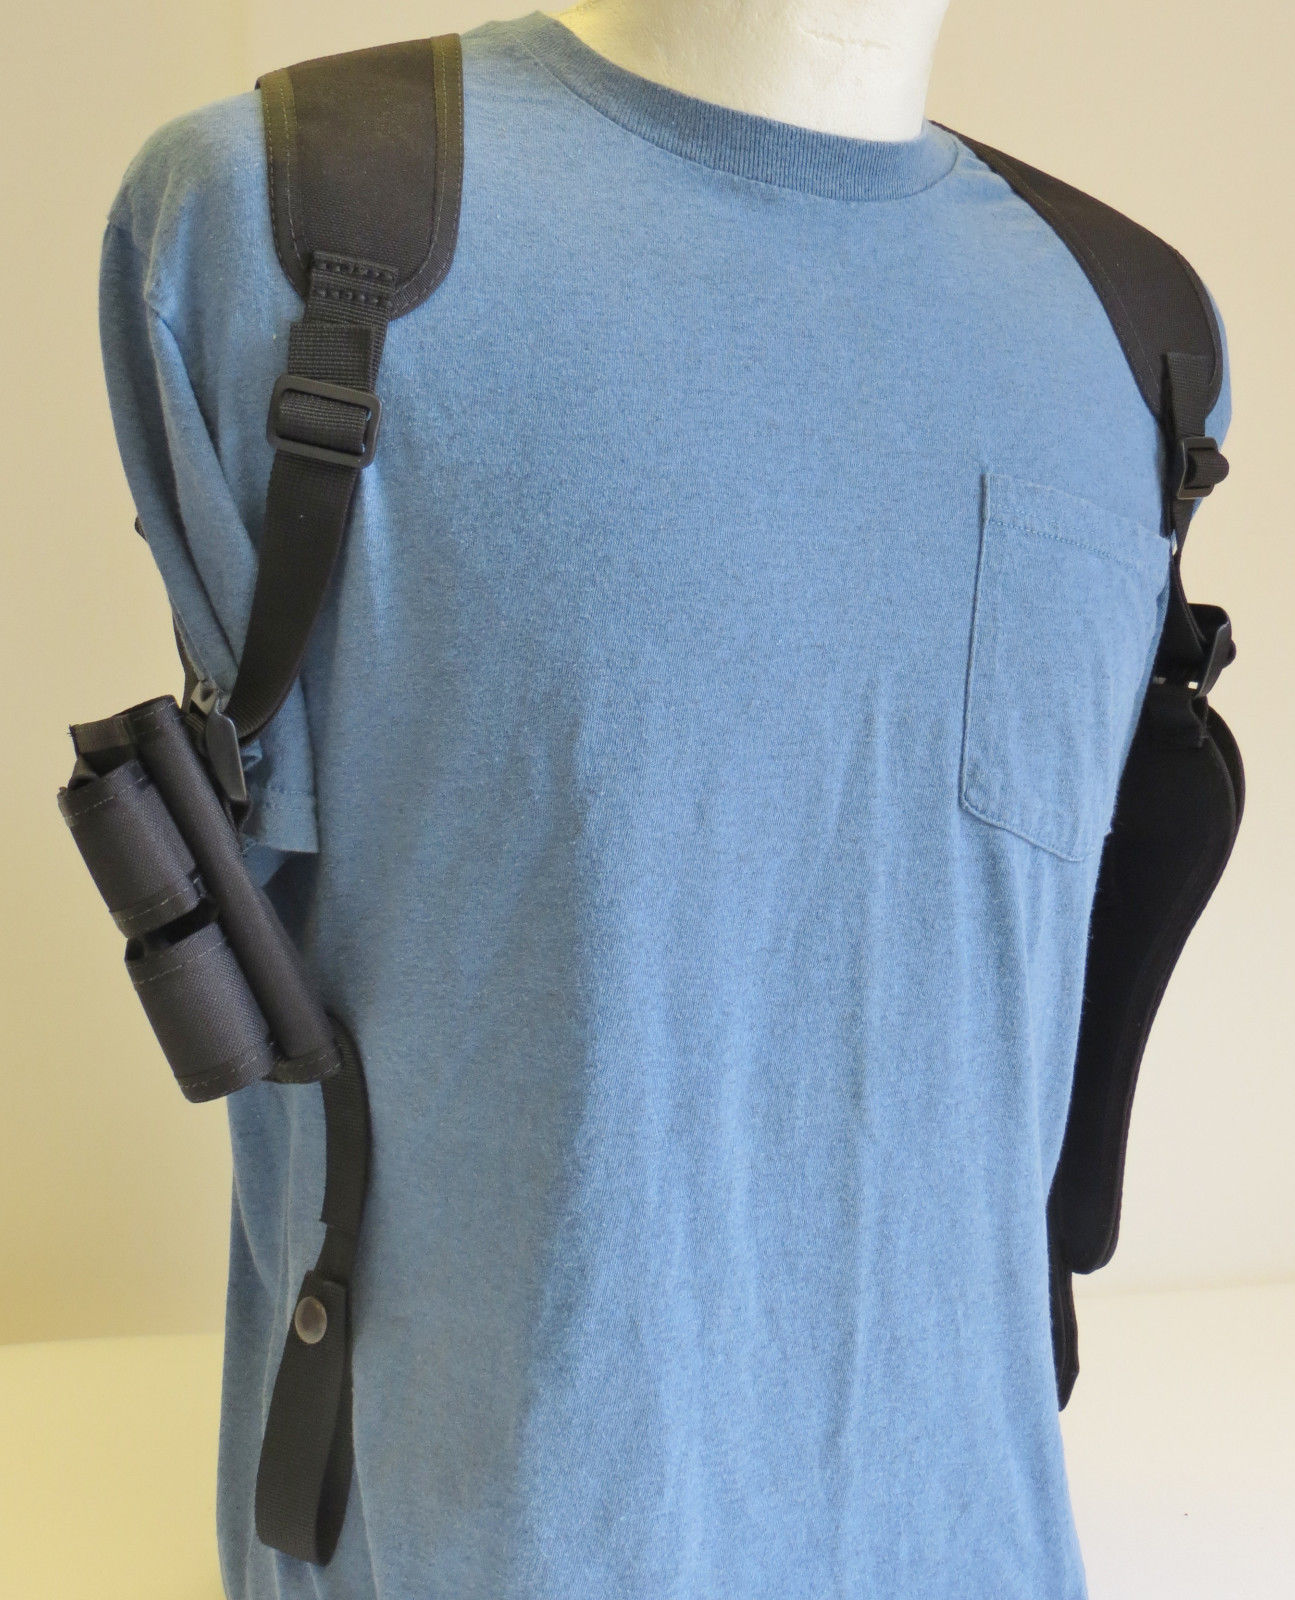 Gun Shoulder Holster with Ammo Pouch TAURUS and 46 similar items